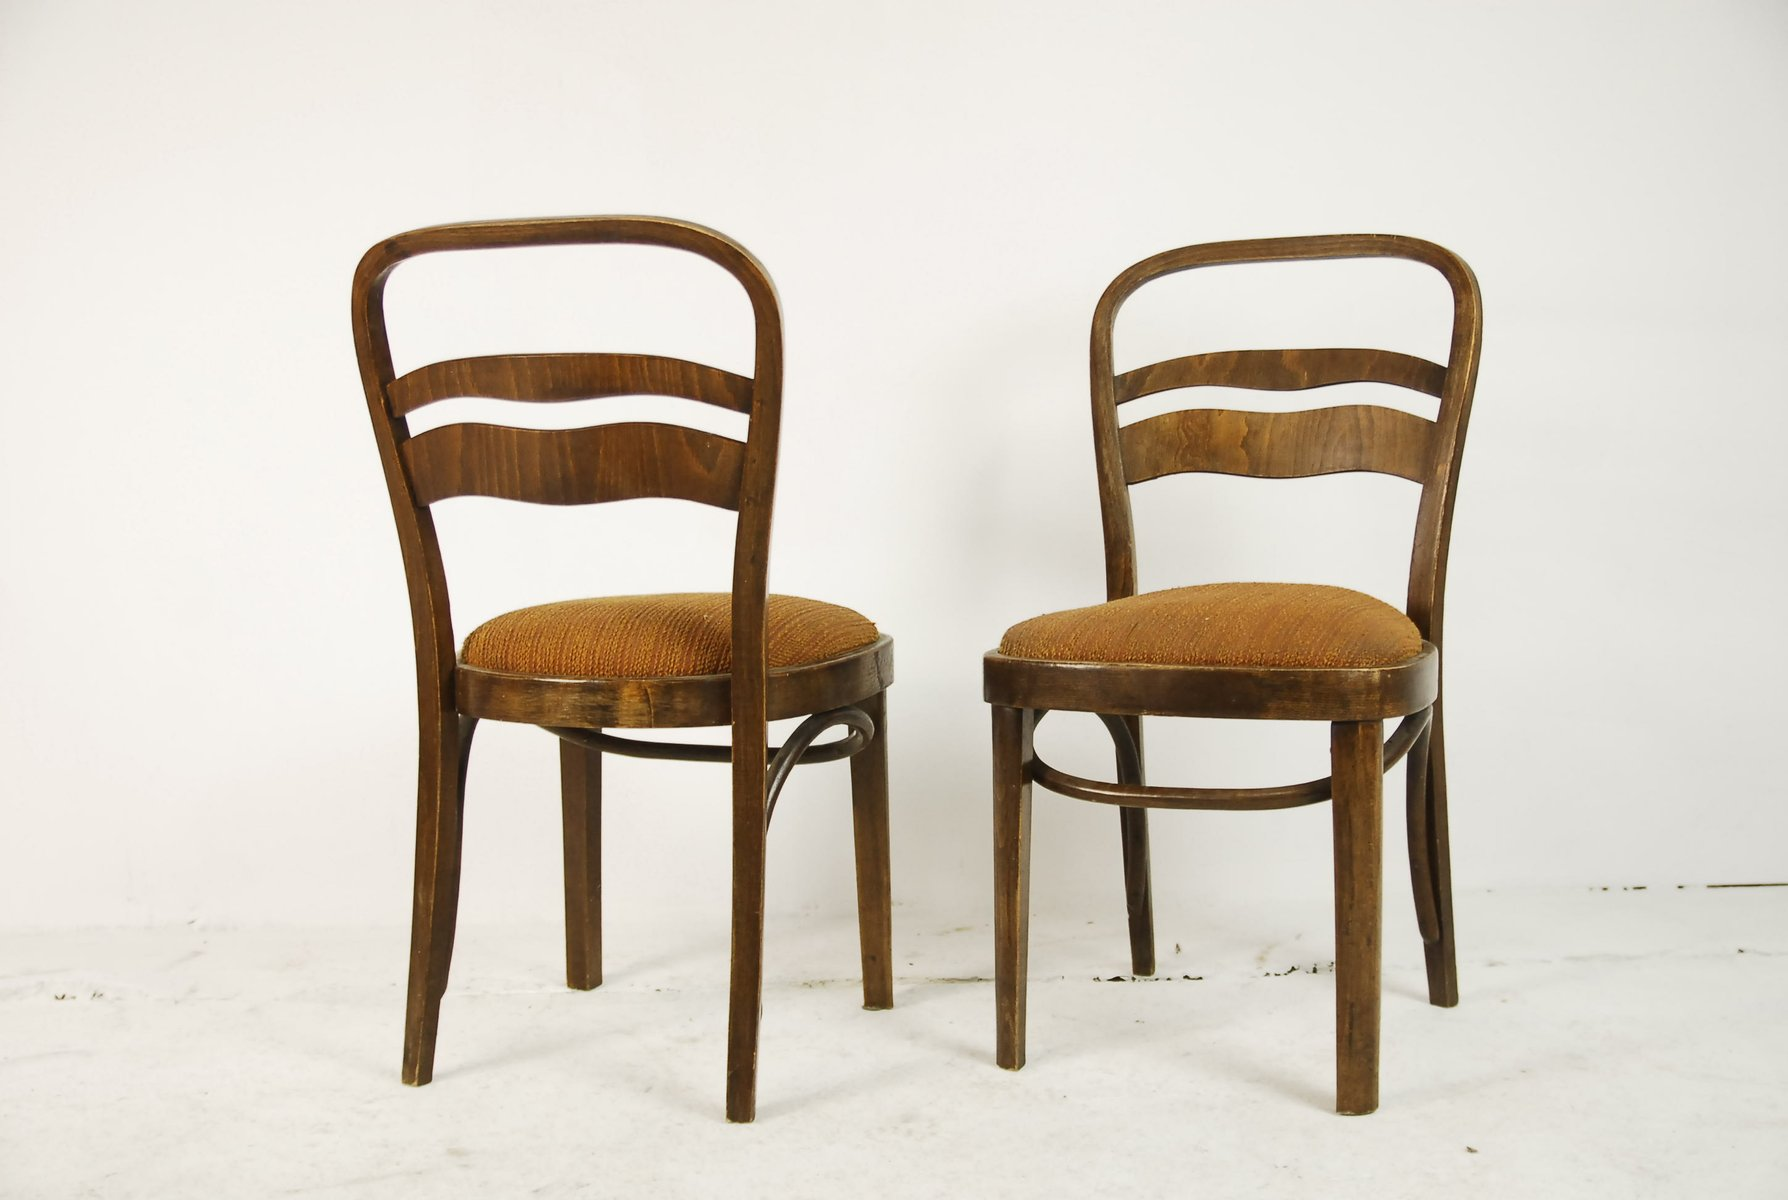 vintage art deco style walnut veneer chairs set of 2 for sale at pamono. Black Bedroom Furniture Sets. Home Design Ideas